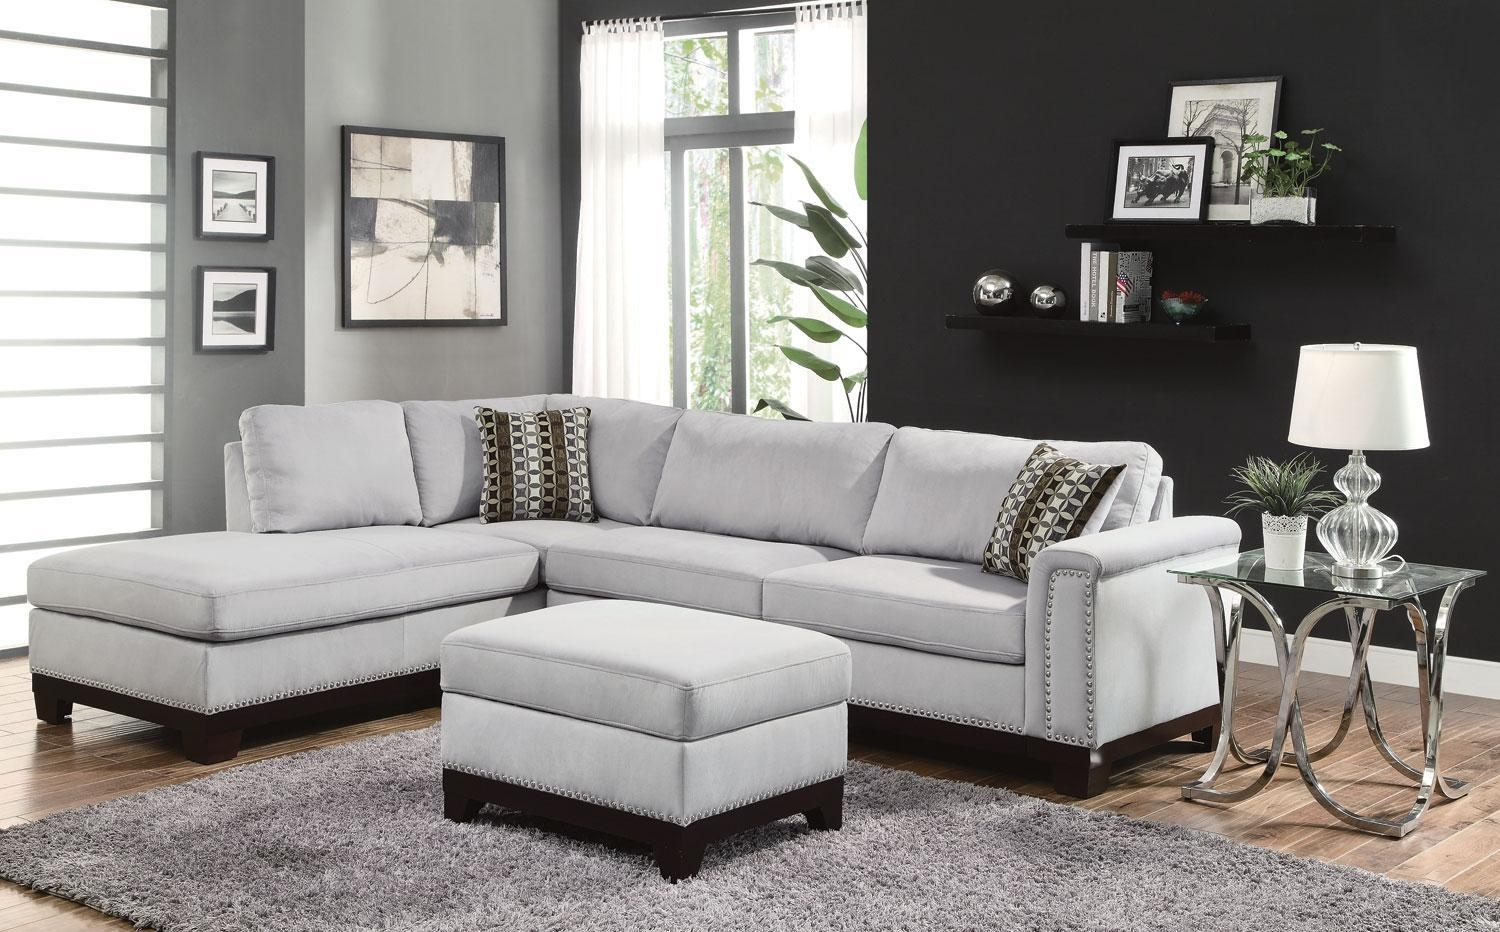 Epic Sectional Sofa With Nailhead Trim 17 In Office Sofa Ideas With With Sectional Sofas With Nailheads (View 8 of 10)